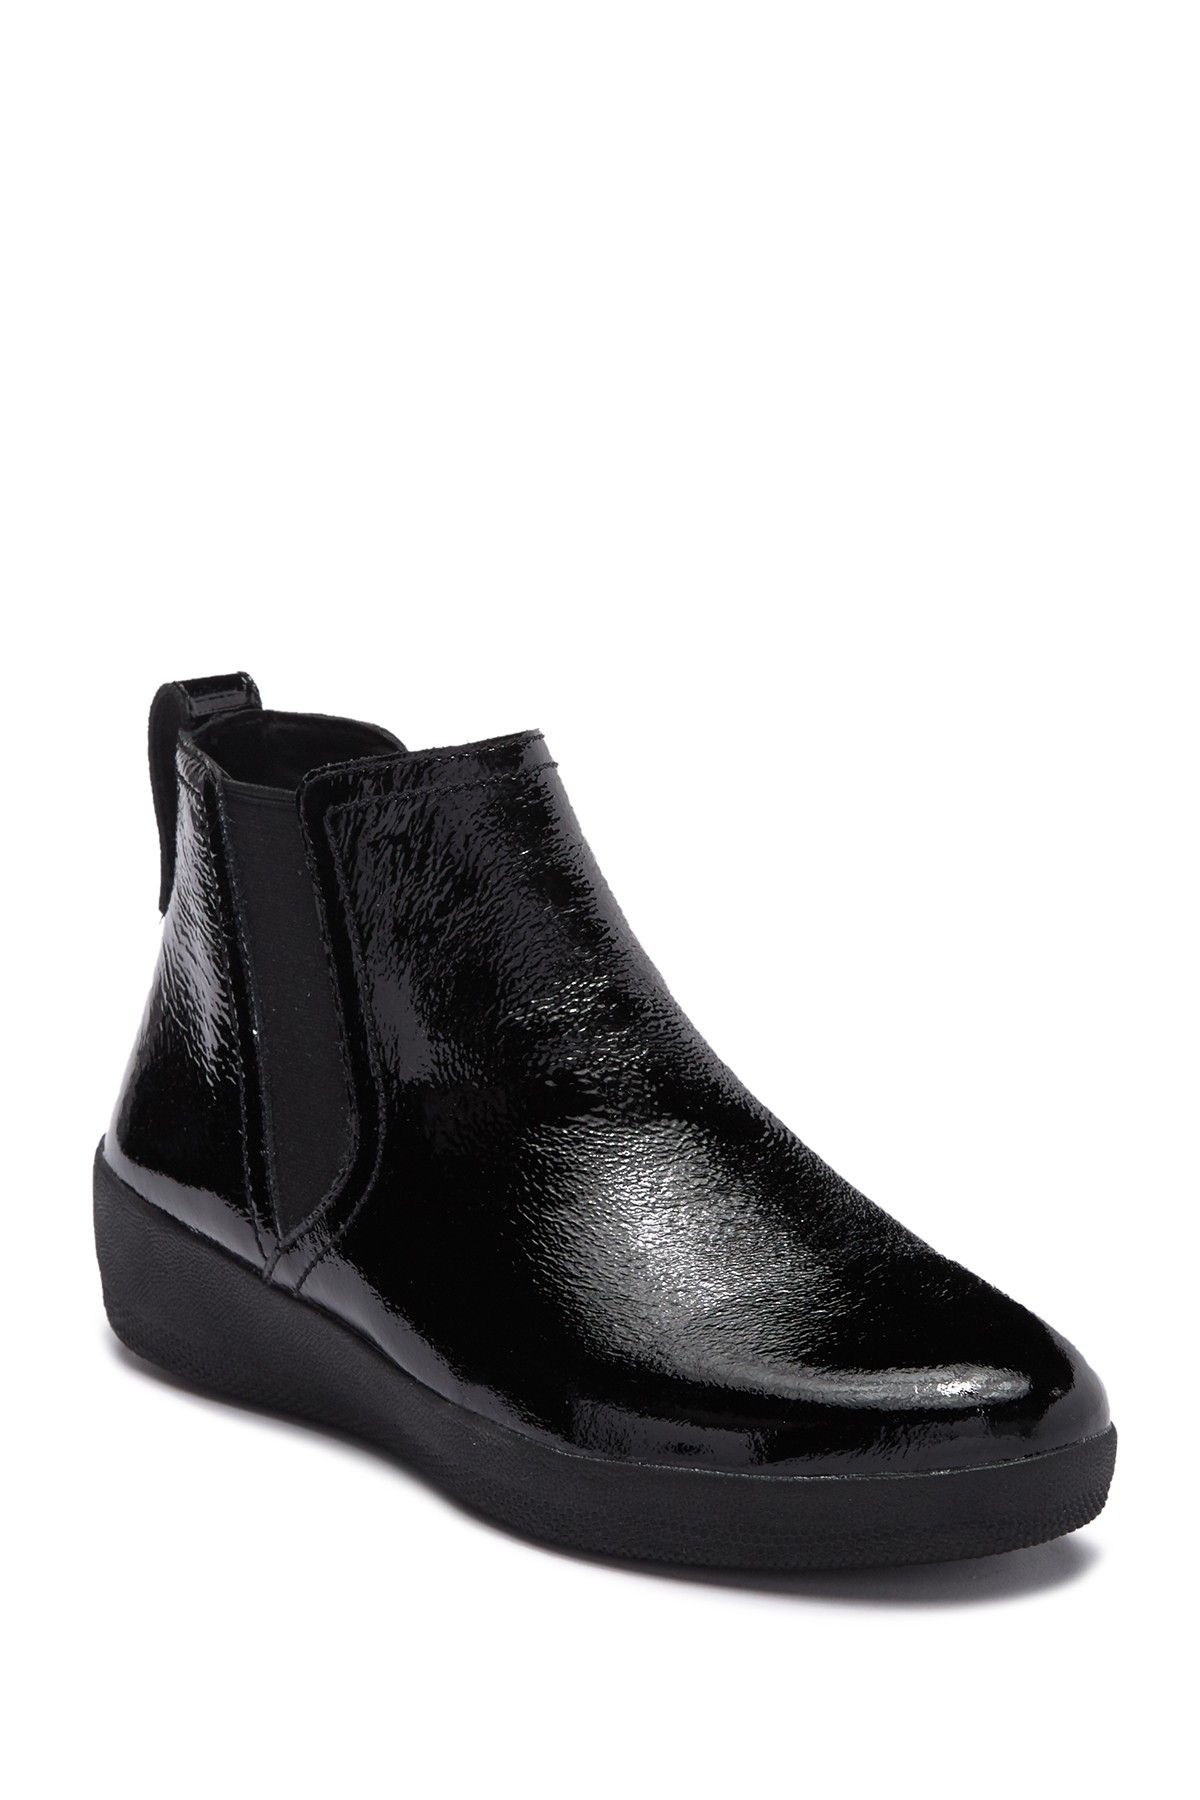 4f4cc2d131f3 Superchelsea Leather Boot by Fitflop on  nordstrom rack